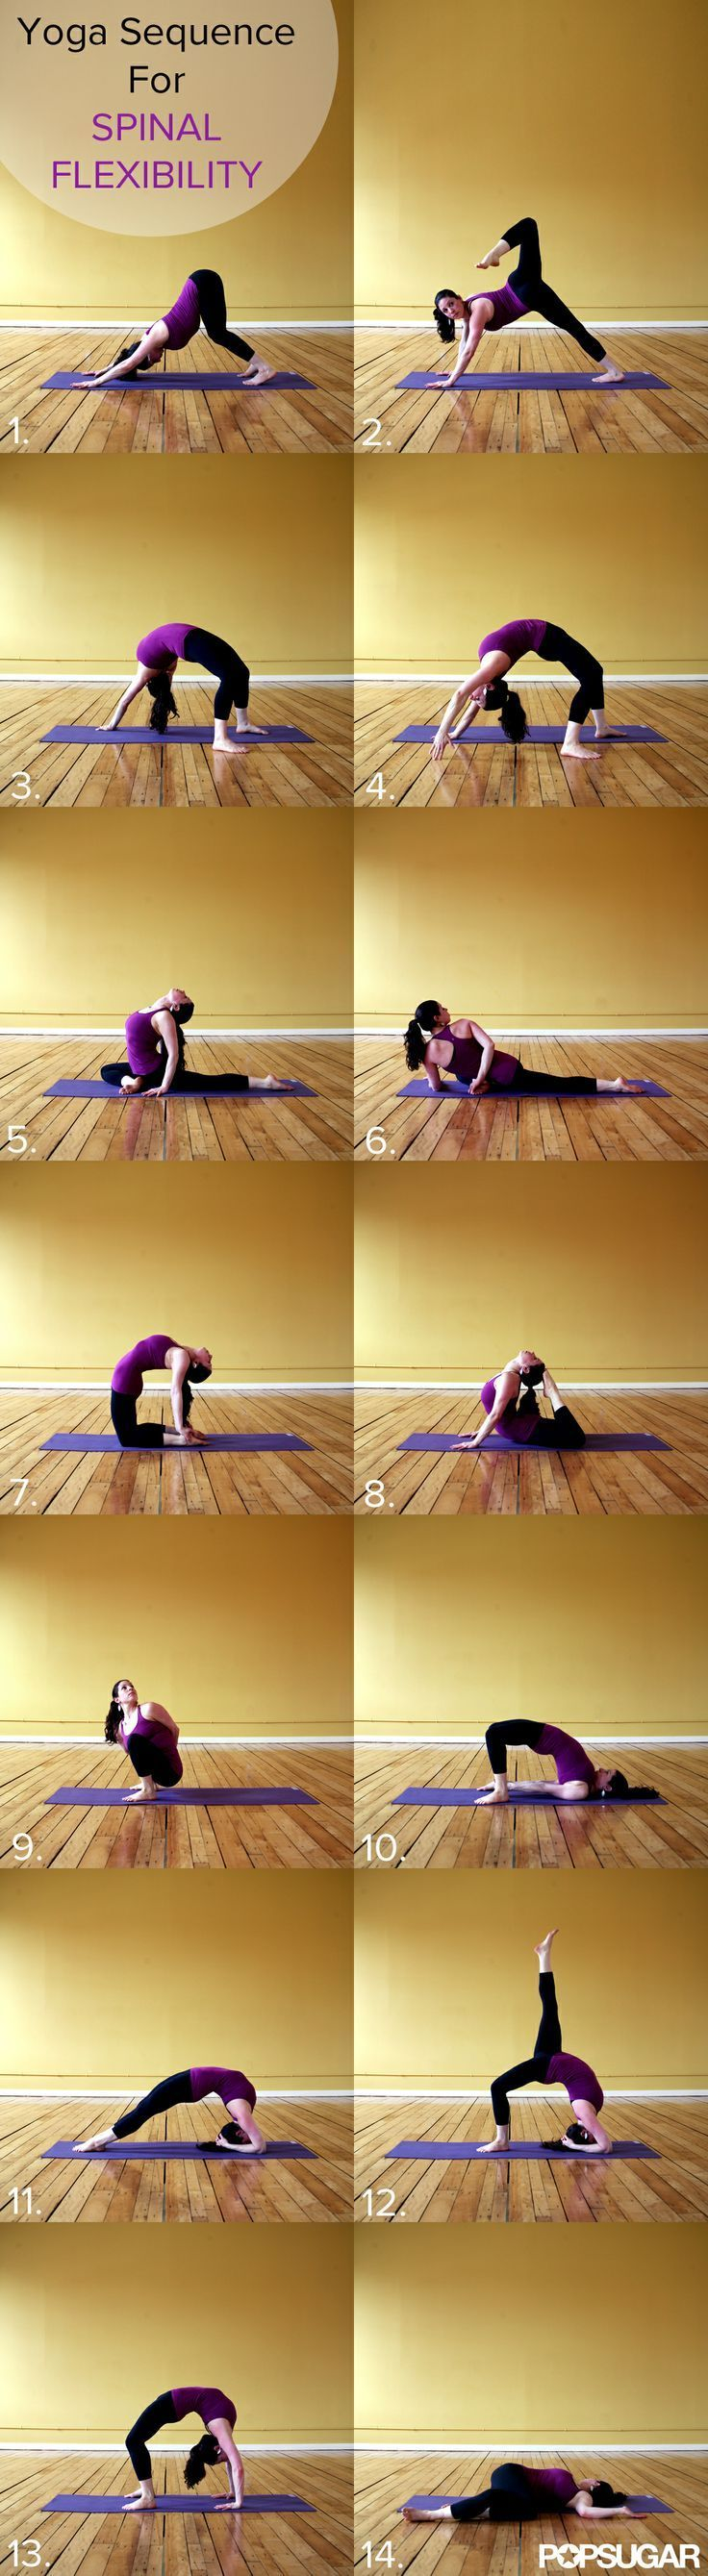 Yoga poses for back stretches